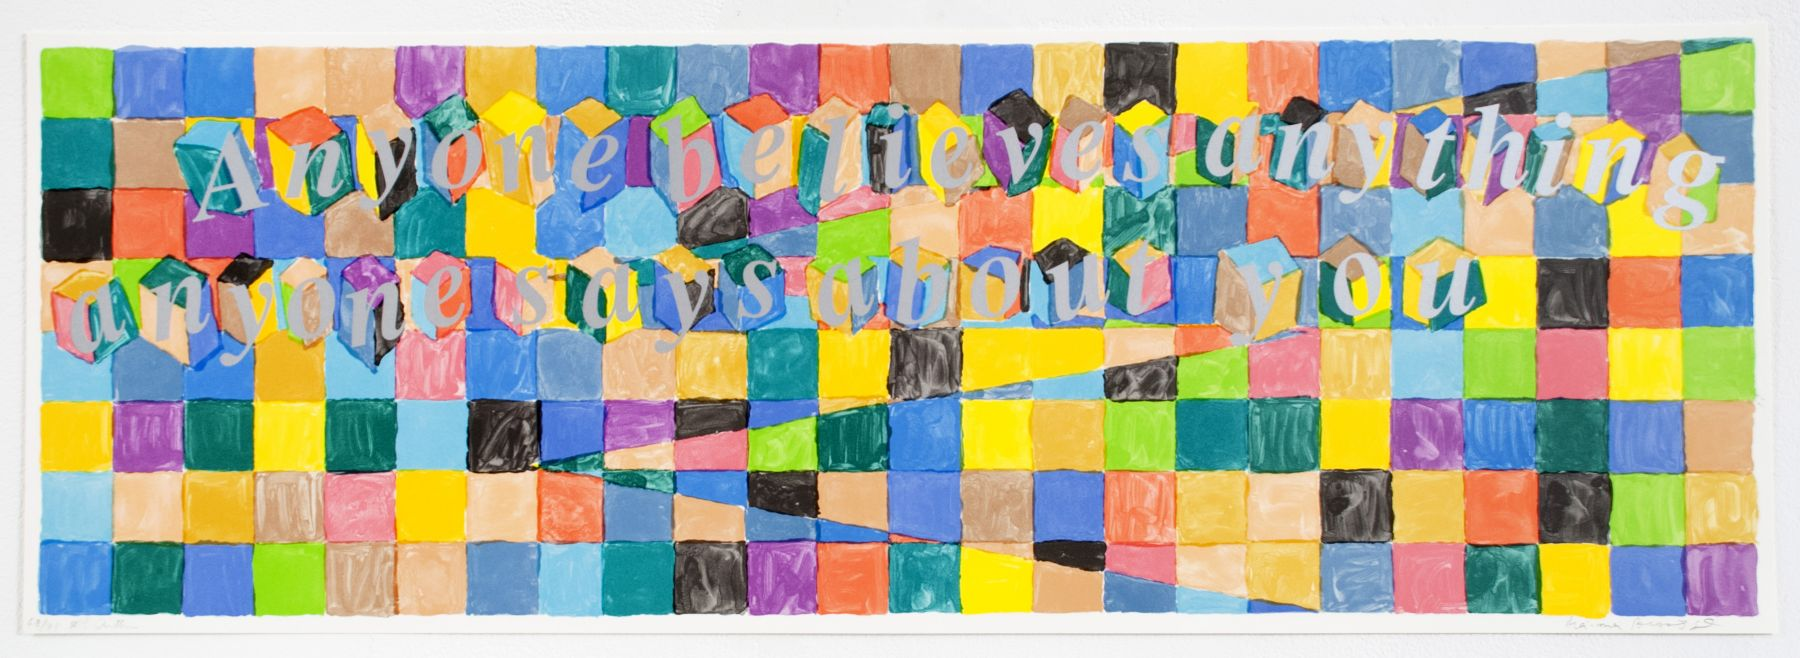 Richard Tuttle Untitled (Poetry Project Print), 1991